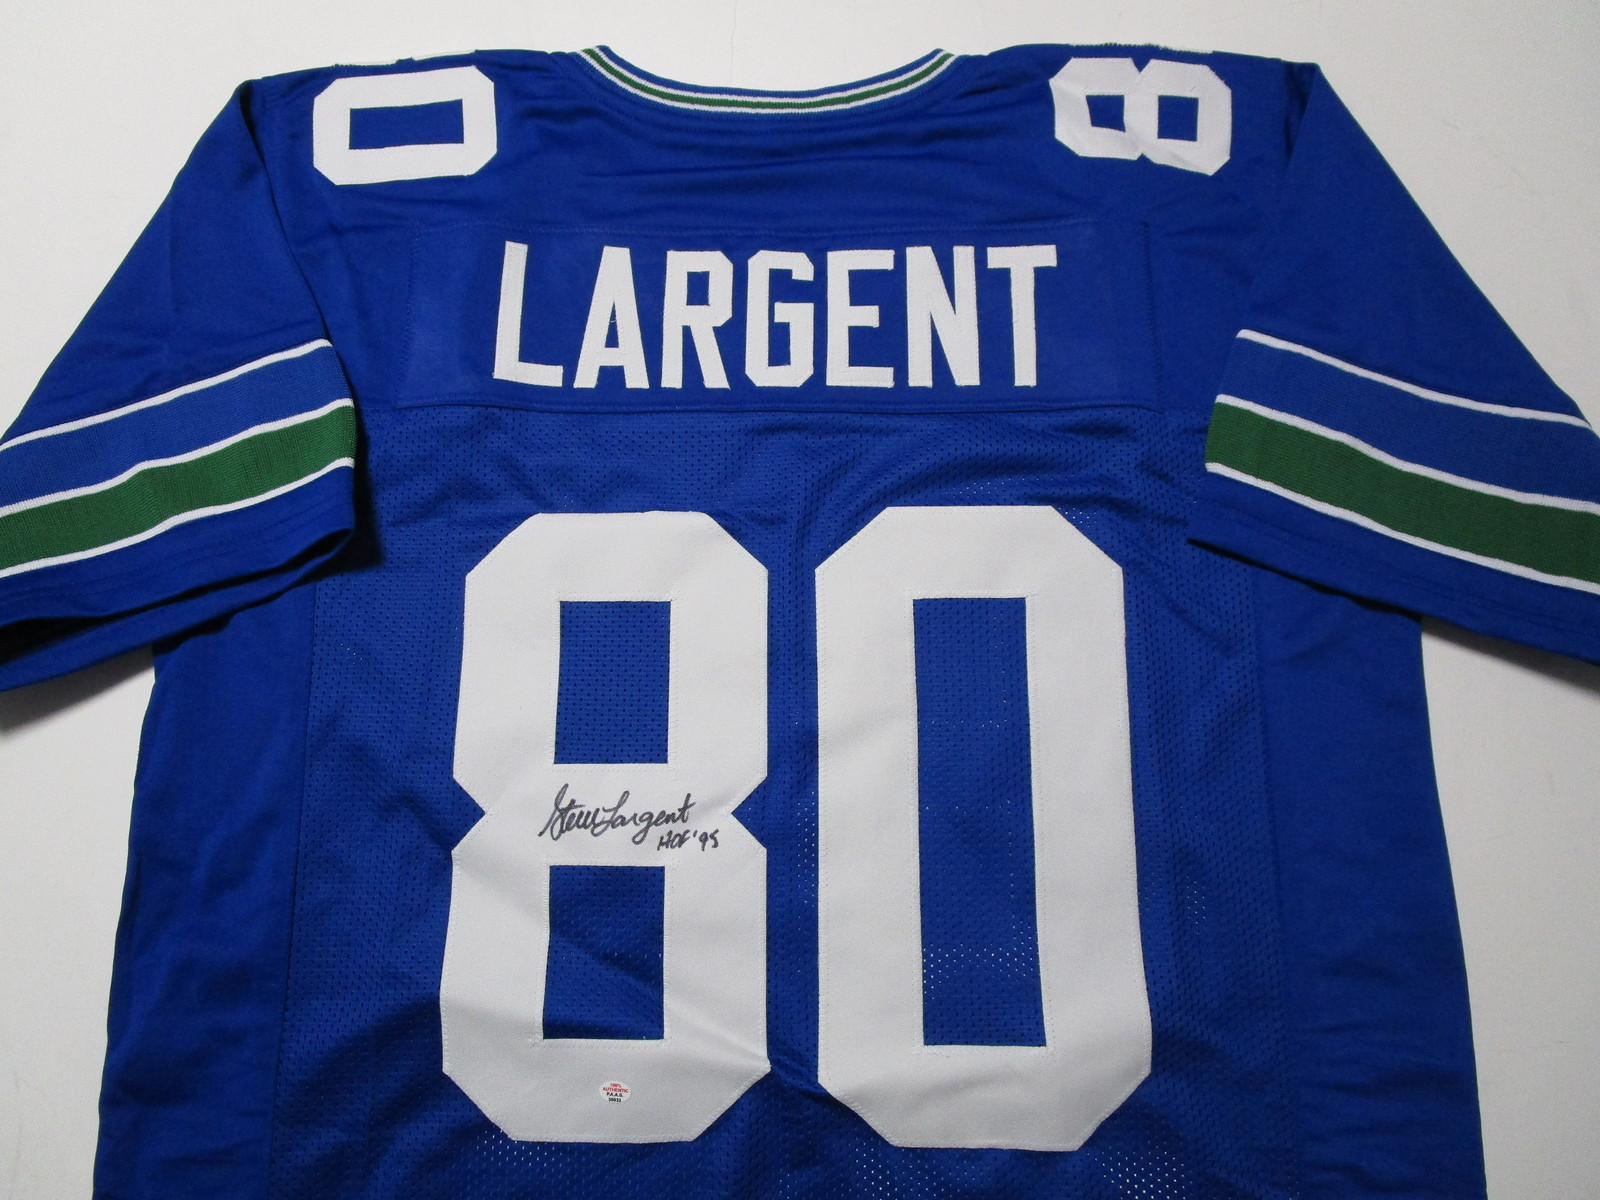 STEVE LARGENT / NFL HALL OF FAME / AUTOGRAPHED SEAHAWKS BLUE CUSTOM JERSEY / COA